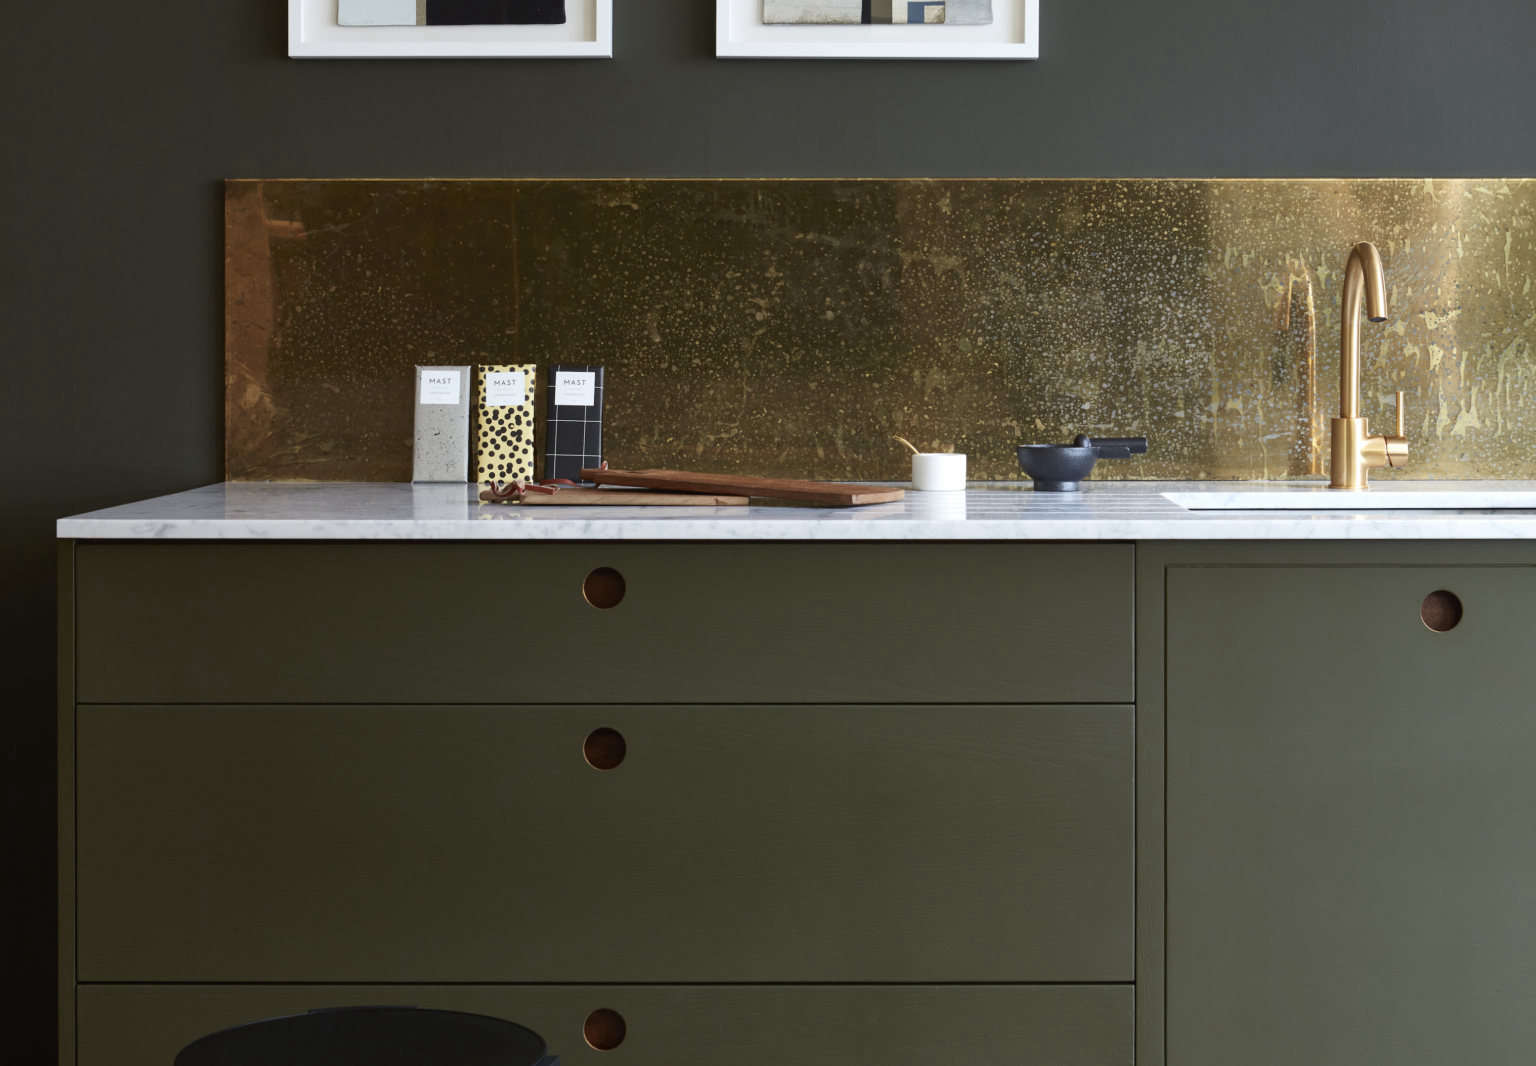 Kitchen of the Week: A Glamorous Design by Well-Priced Bespoke UK Workshop Naked Kitchens